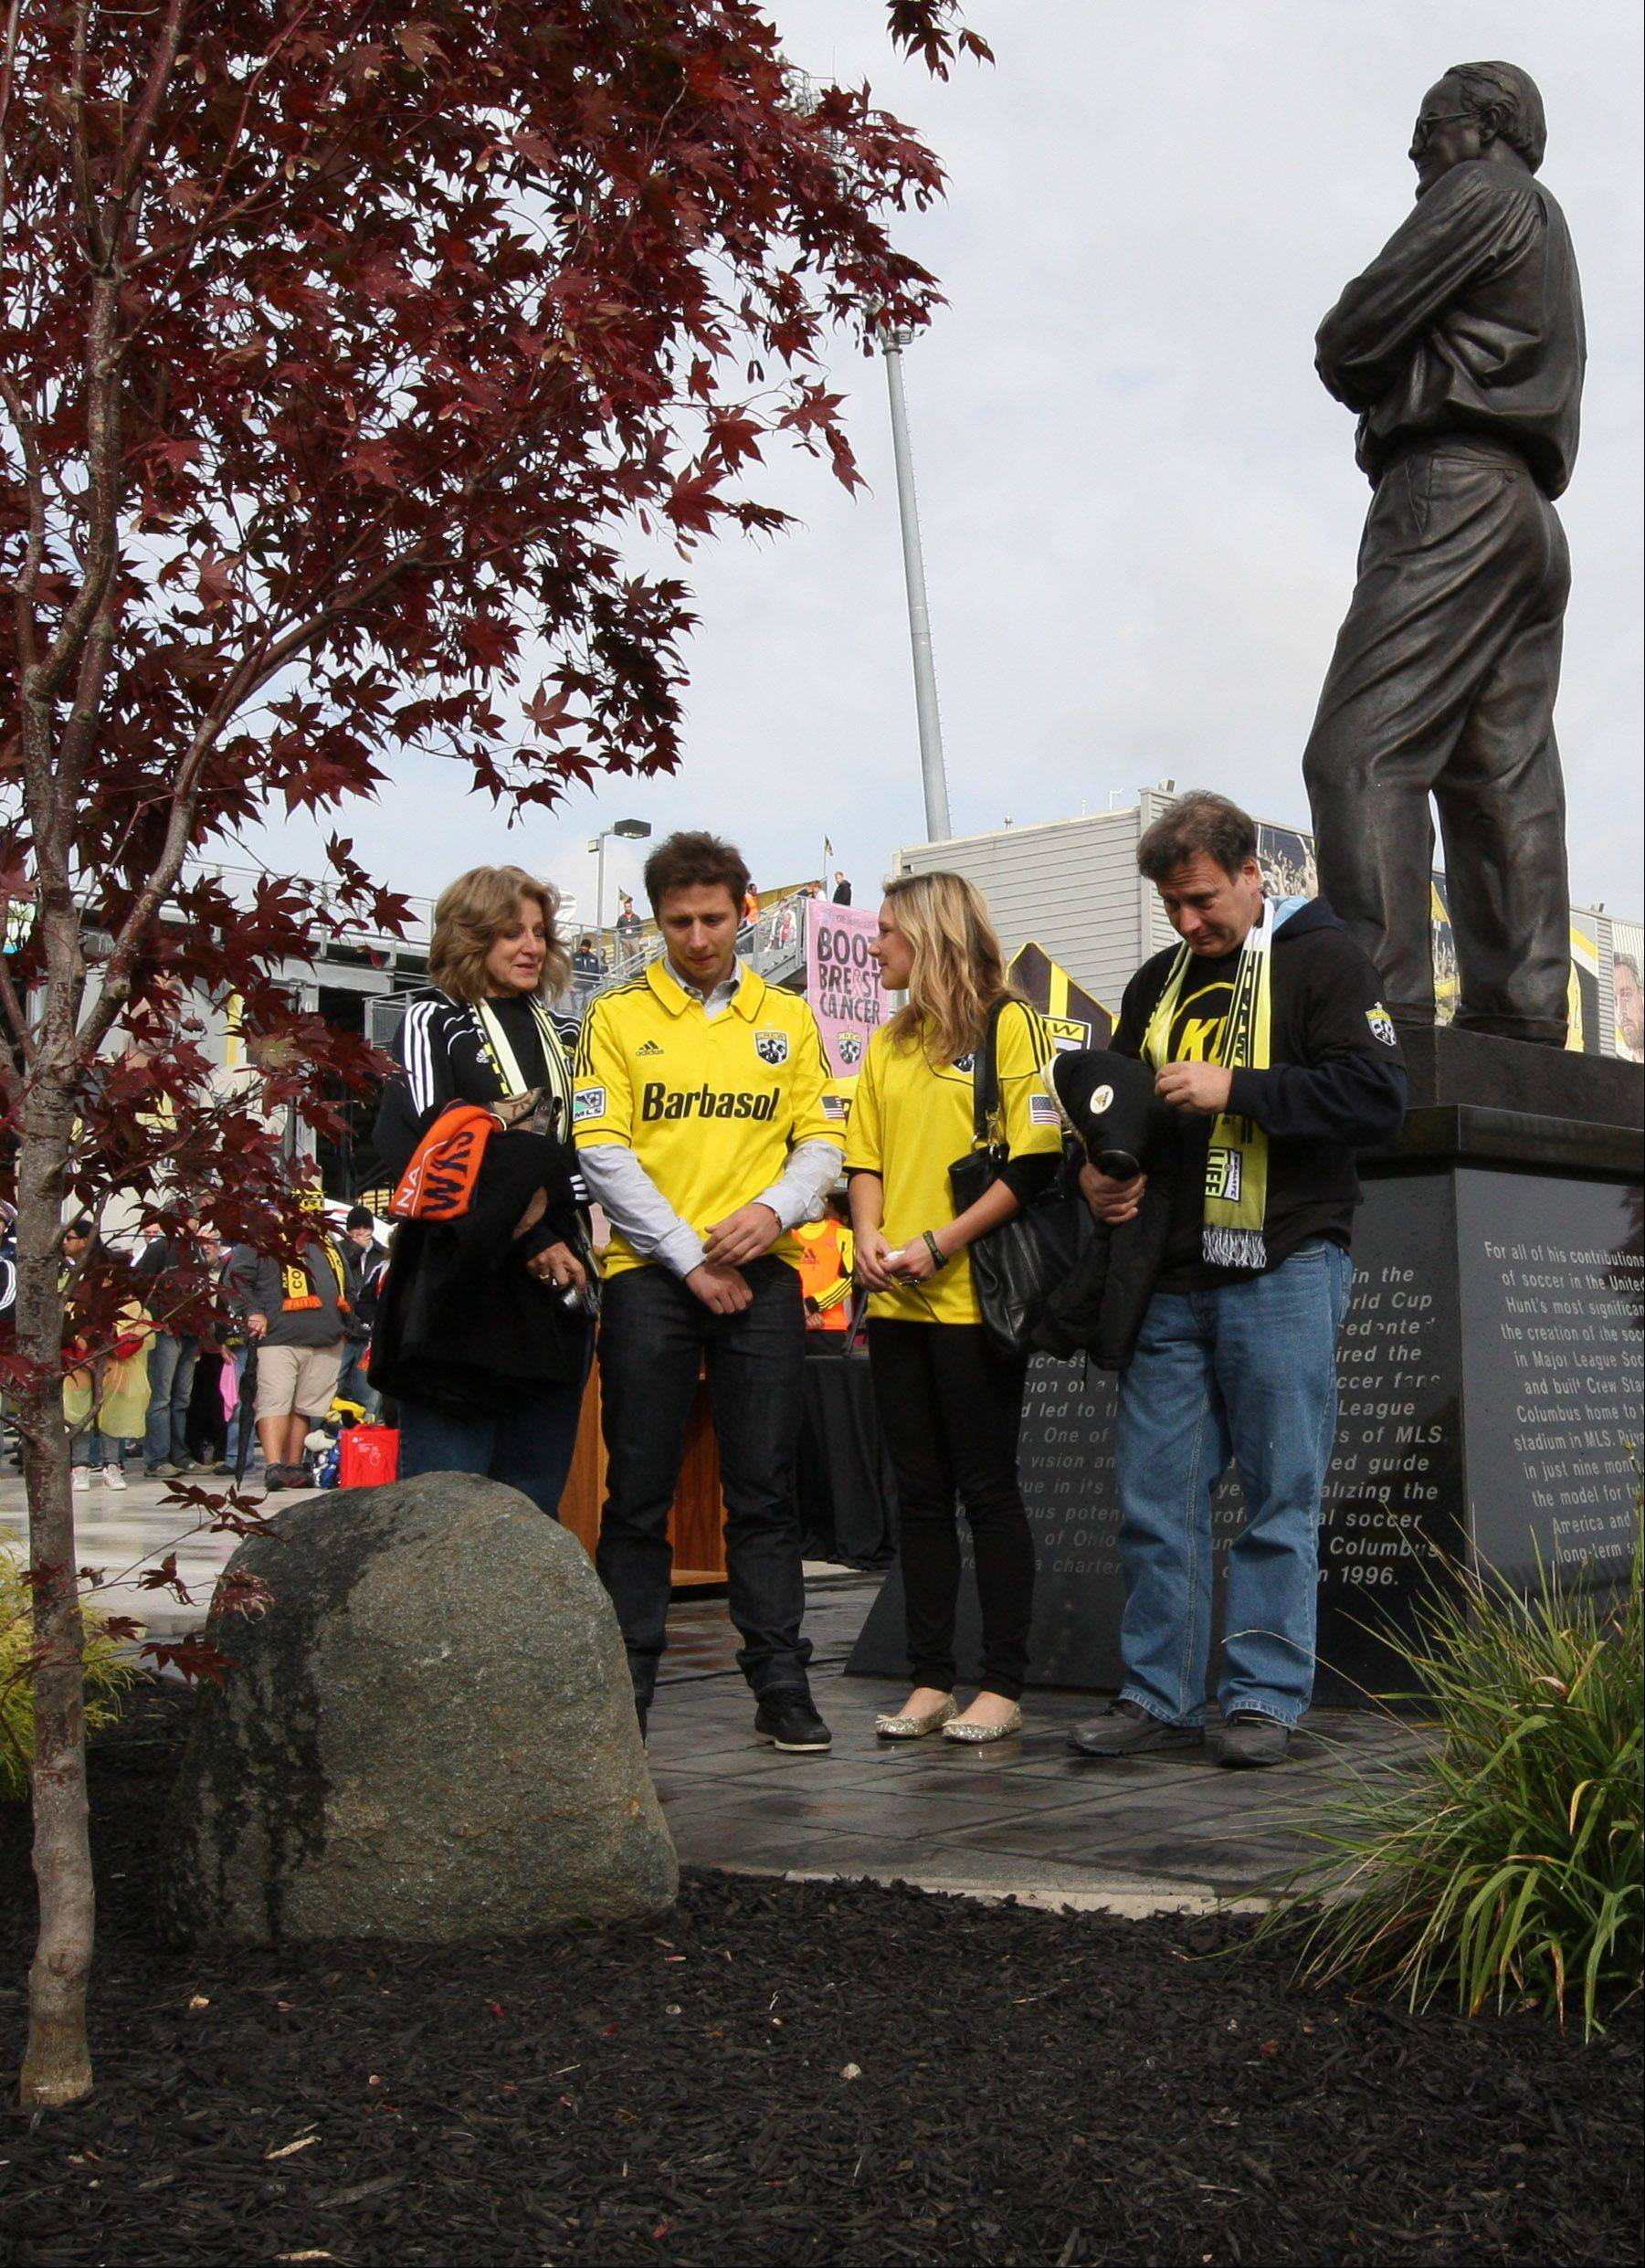 The Urso family Sandy, Kirk Urso's mother, Kyle (brother), Erica (Kyle's girlfriend) and Mike (father) stand under the shadow of the statue of Lamar Hunt as they read an inscription on a boulder dedicated Sunday to Columbus Crew player Kirk Urso during a ceremony at Founder's Park in the Crew Stadium. Kirk Urso of Lombard died suddenly on Aug. 5 of arrhythmogenic right ventricular cardiomyopathy at the age of 22.